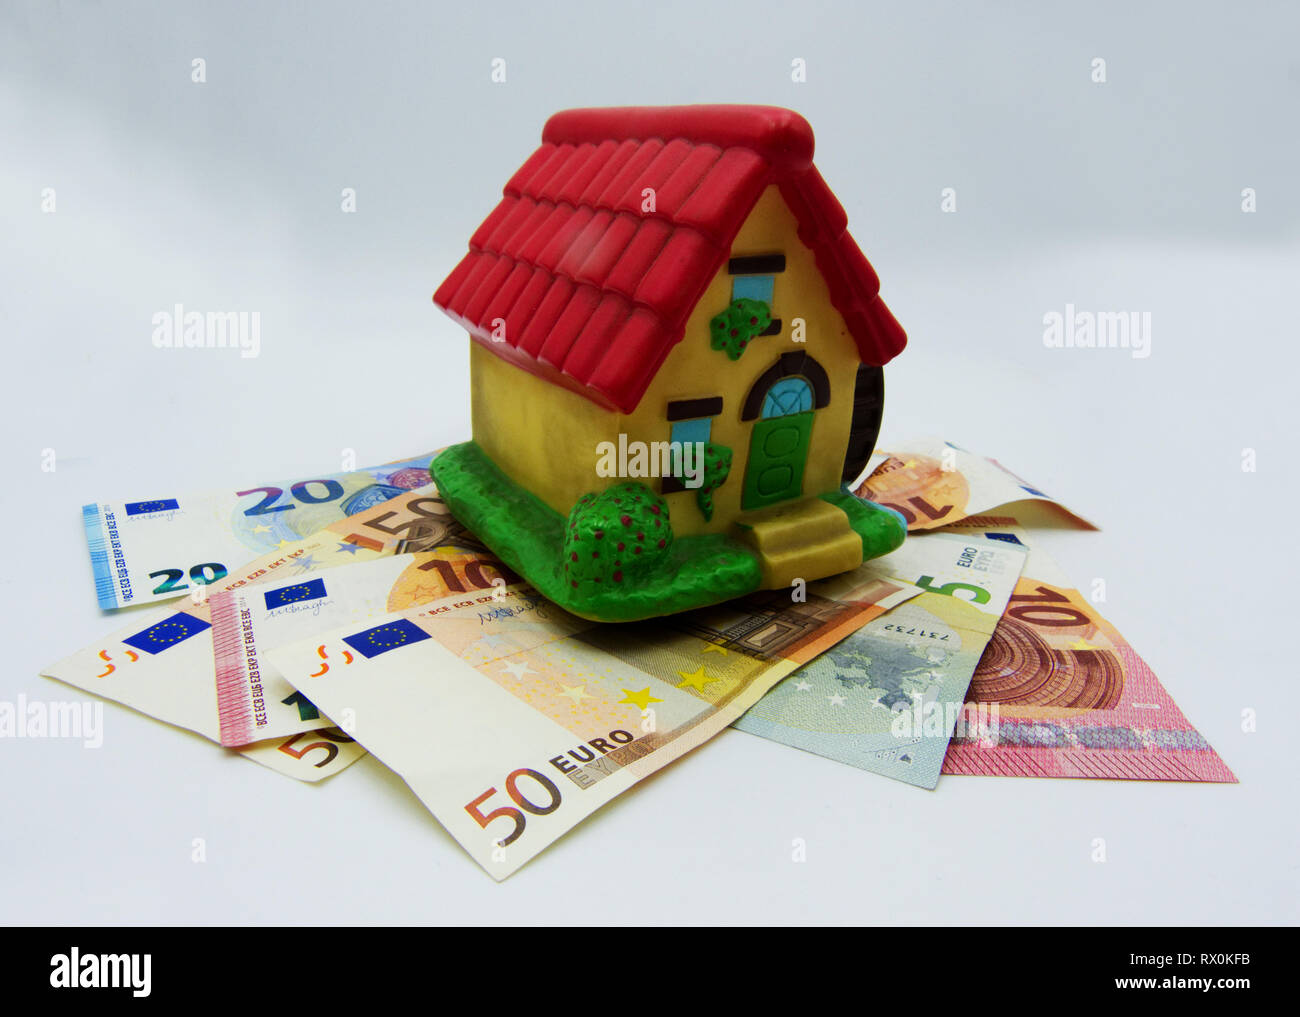 Taxes and mortgage on the house, concept - Stock Image